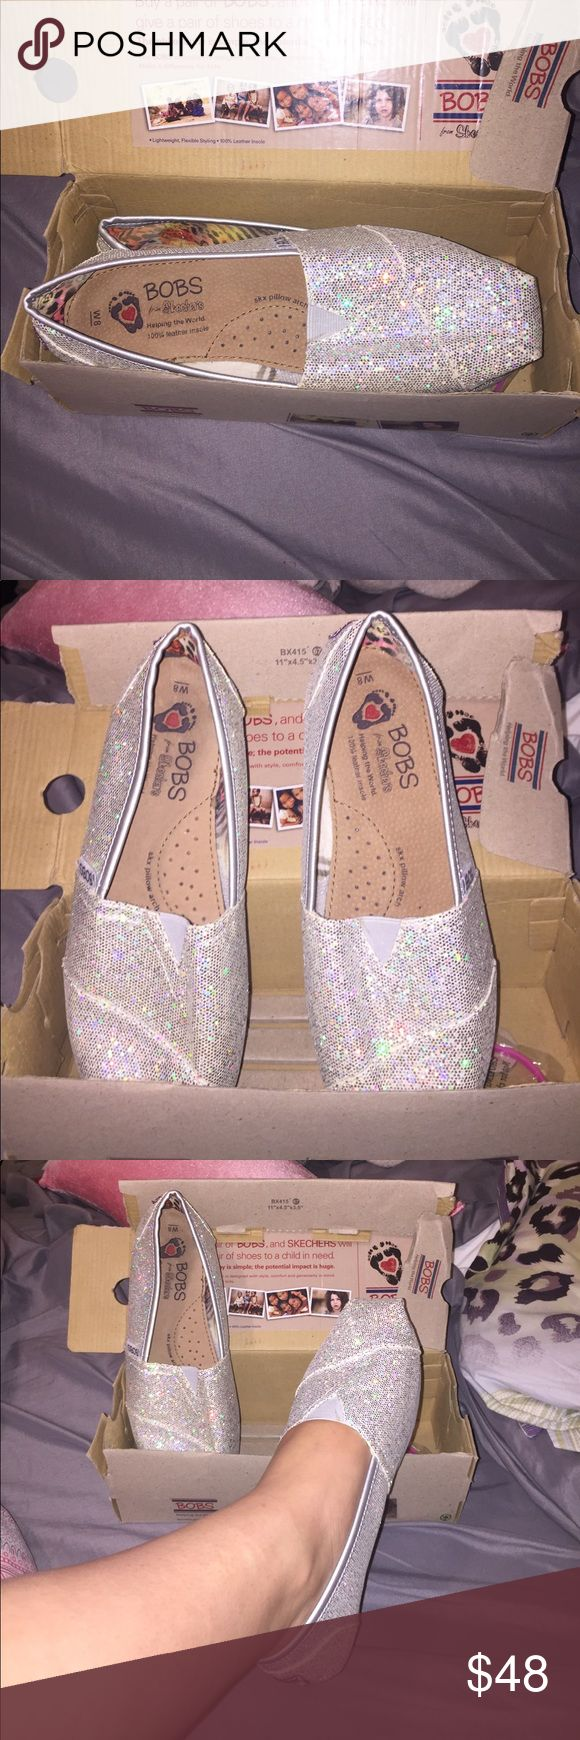 """BOBS sparkly silver slide ons NEVER WORN BOB's sparkly silver shoes. Includes box and pink bracelet that states """"make a difference for kids. NEVER WORN, in new perfect condition. Size 8. BOBS from skechers Shoes Flats & Loafers"""